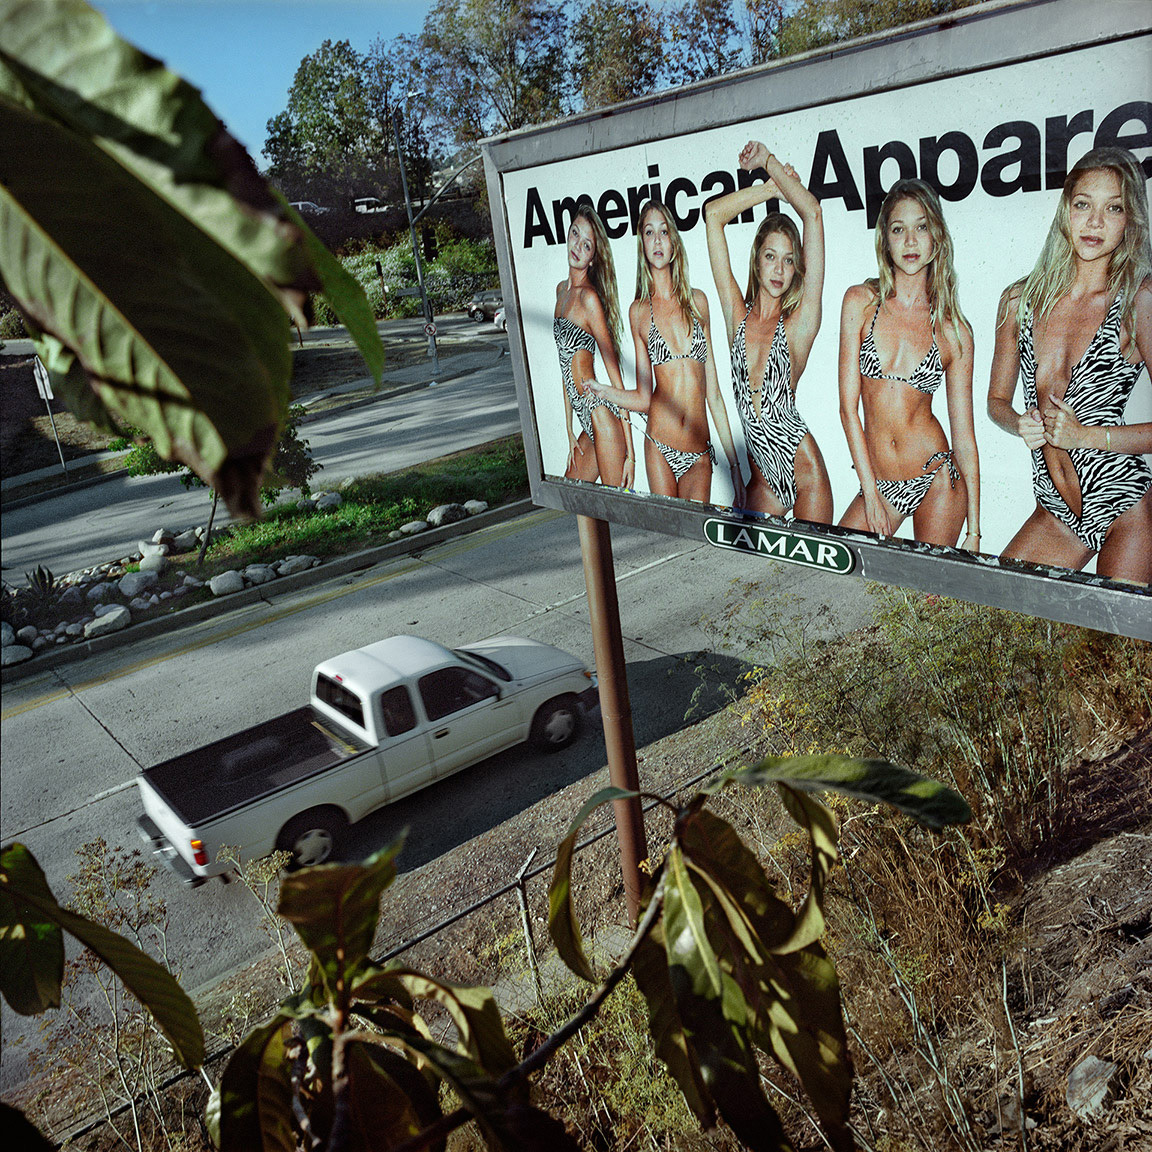 40-TheAmericanApparel-ThomasAlleman-Website-092214